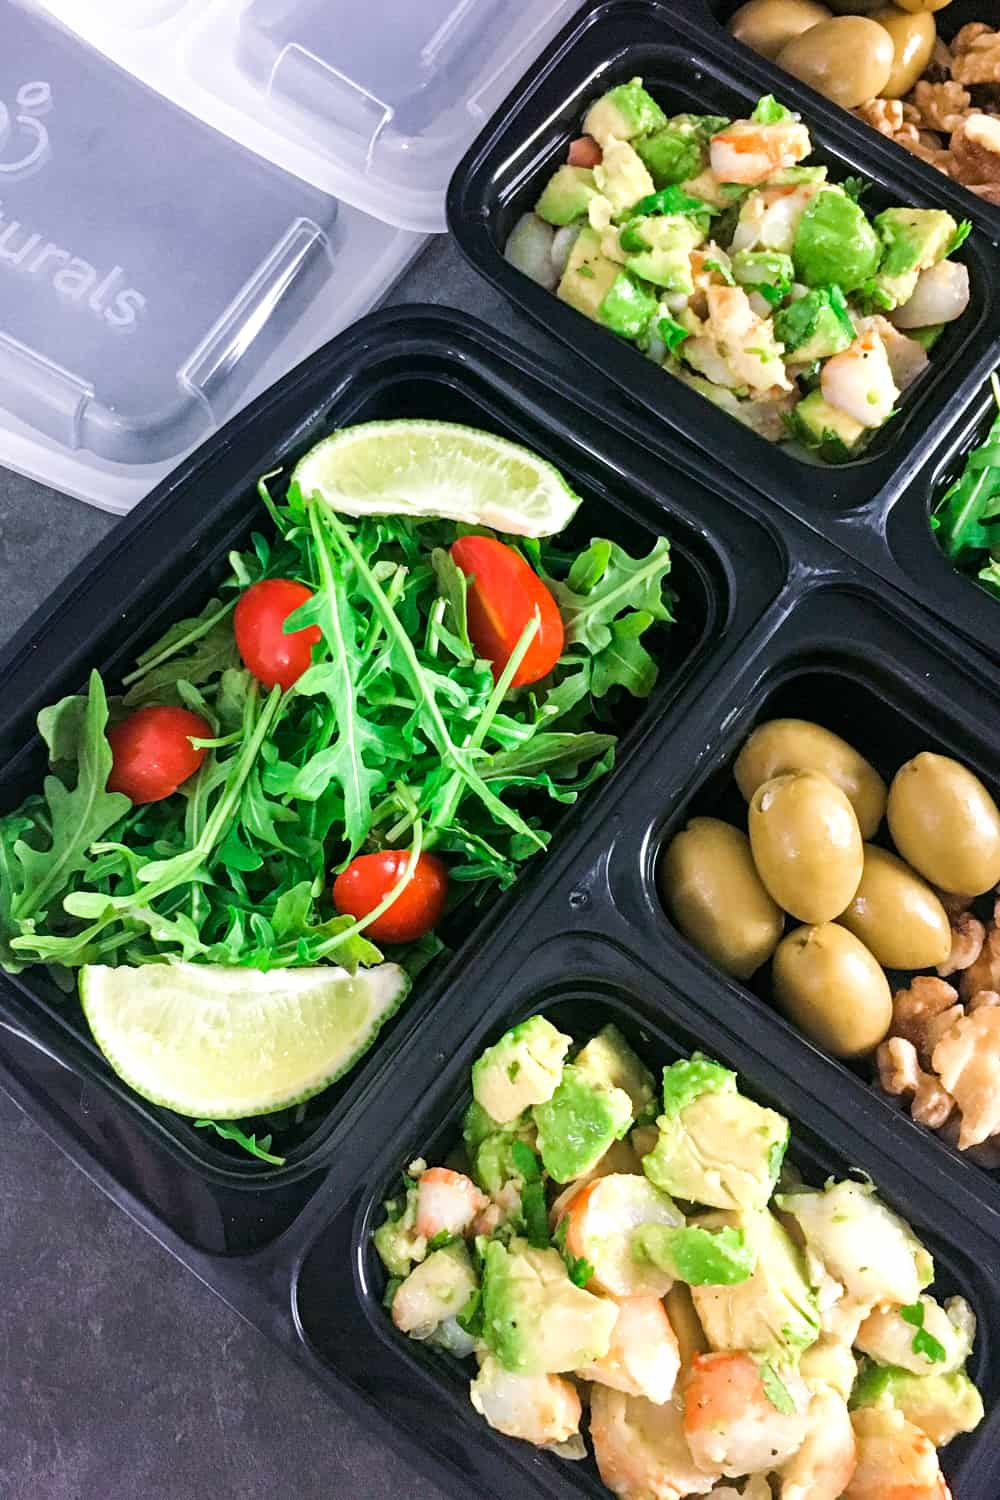 keto meal prep idea, salad ingredients in to go container